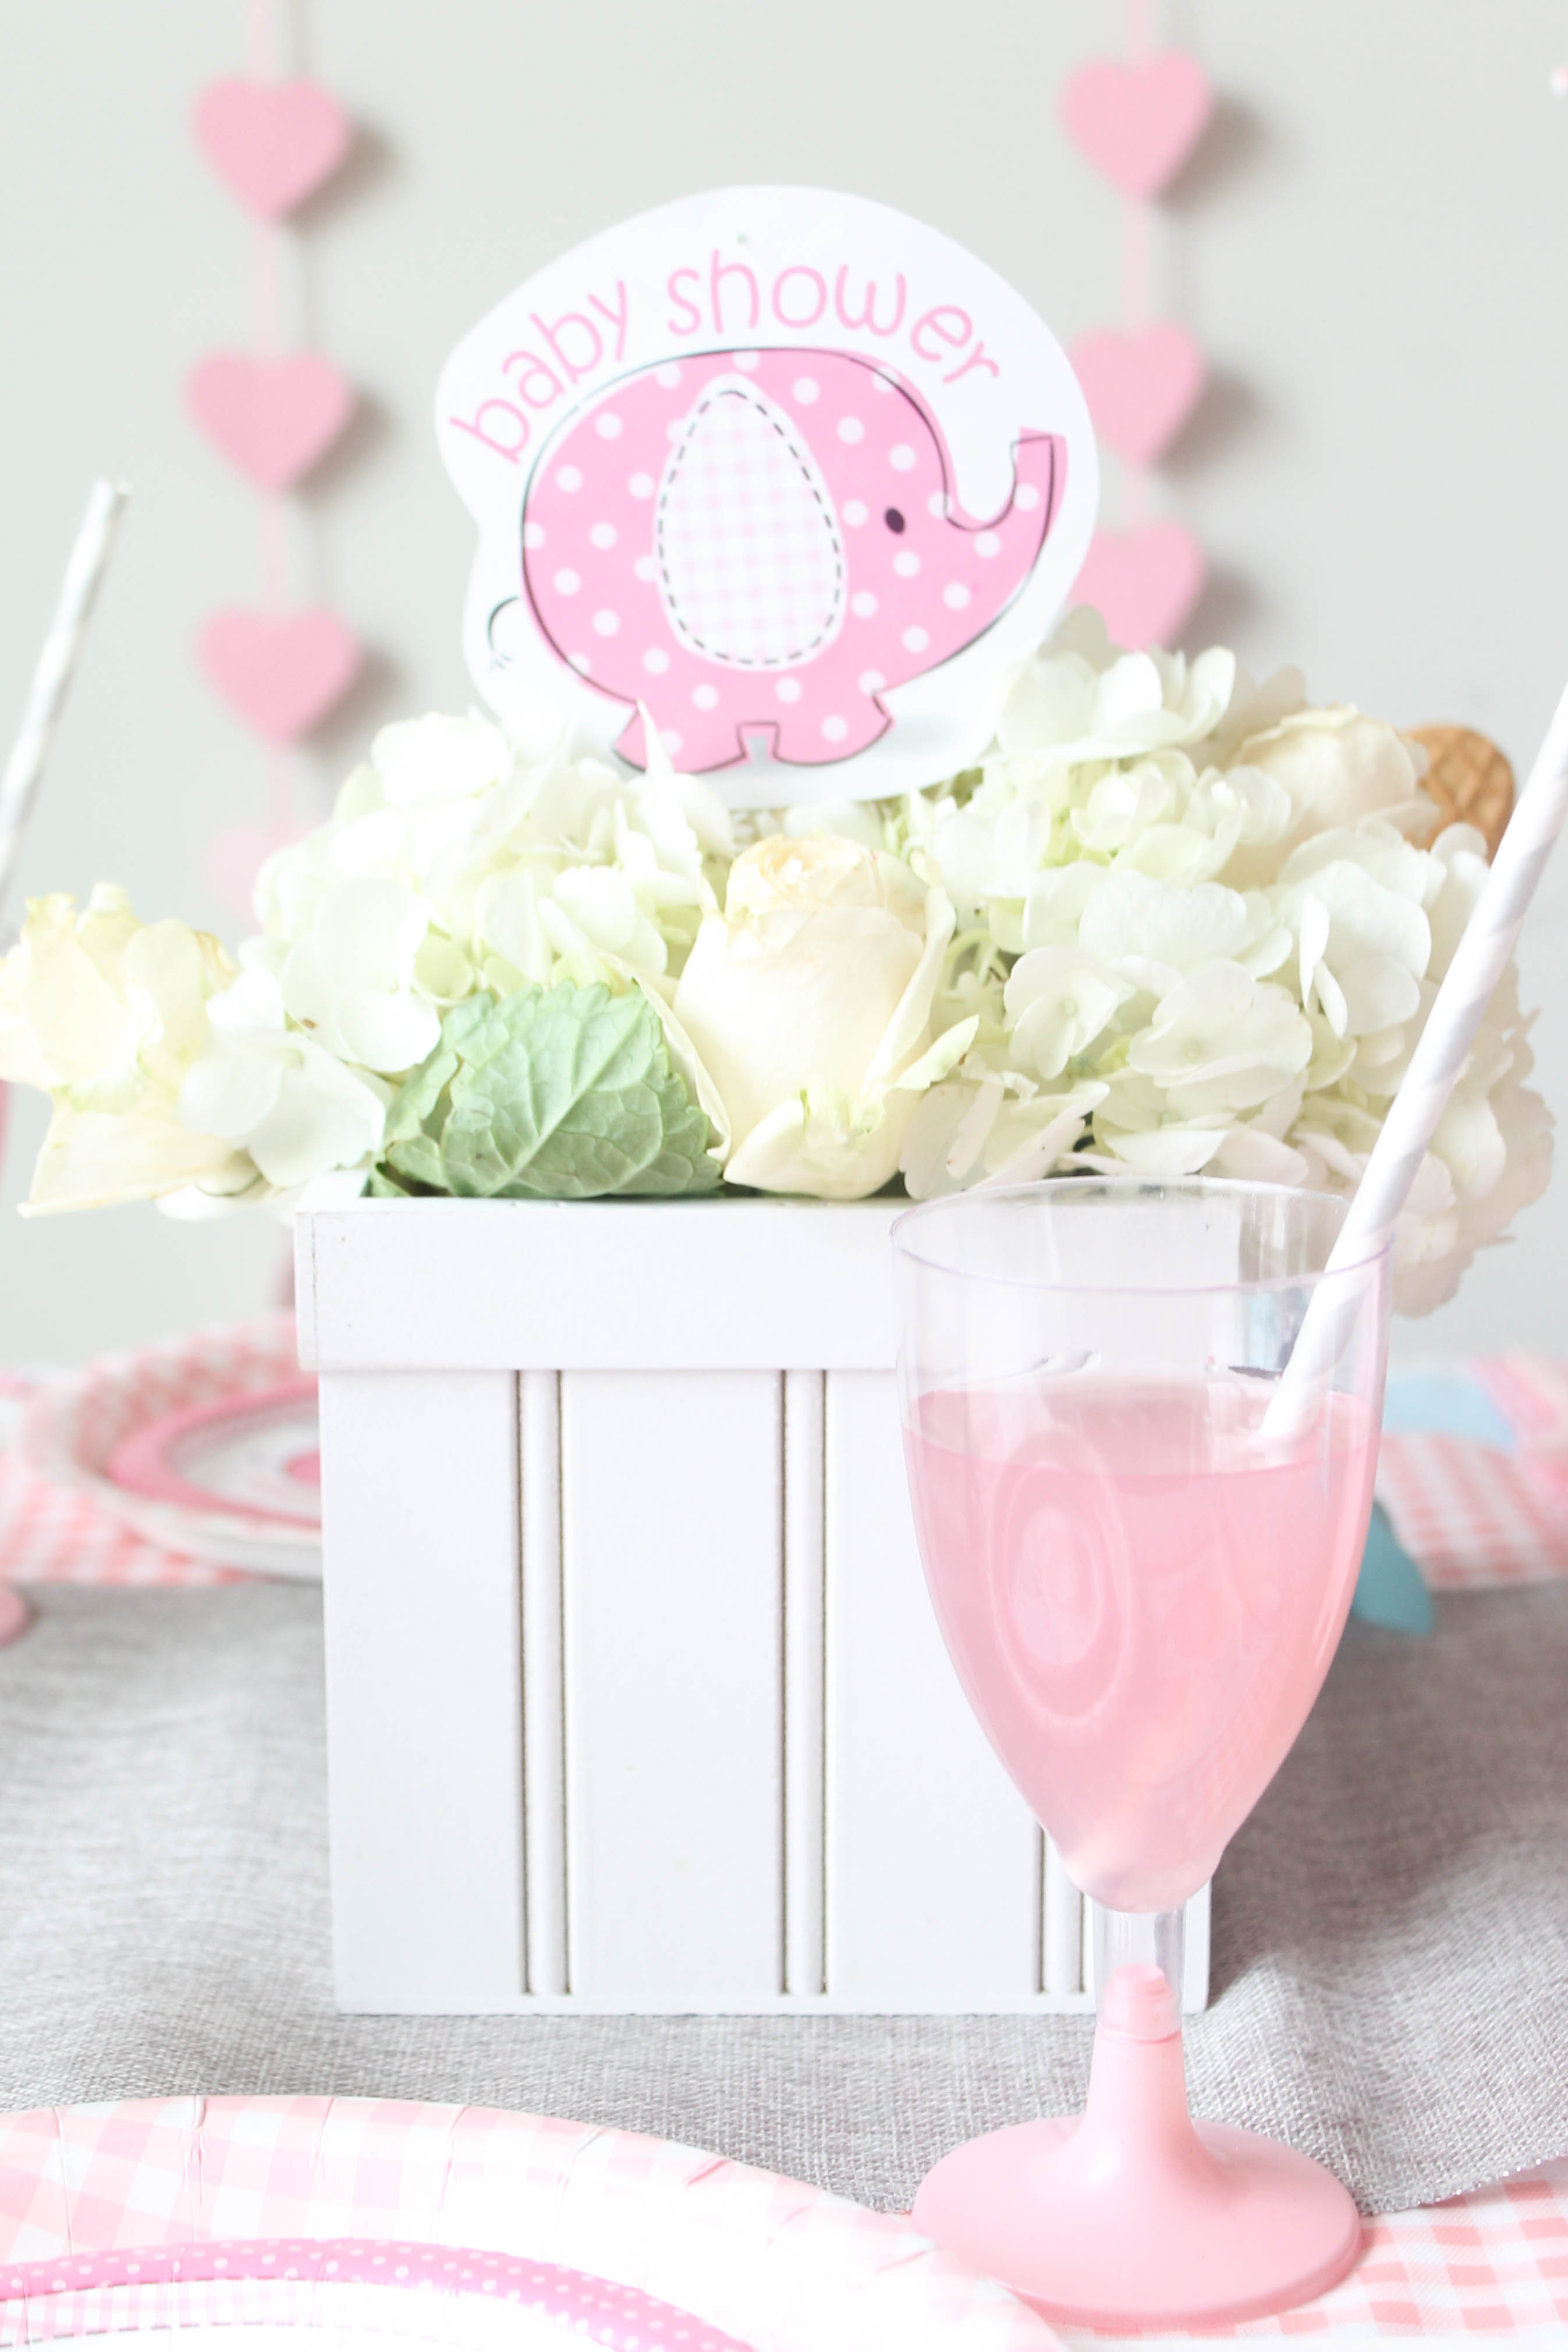 Decorations For Baby Shower Elephant Theme  from cl-drupal.orientaltrading.com